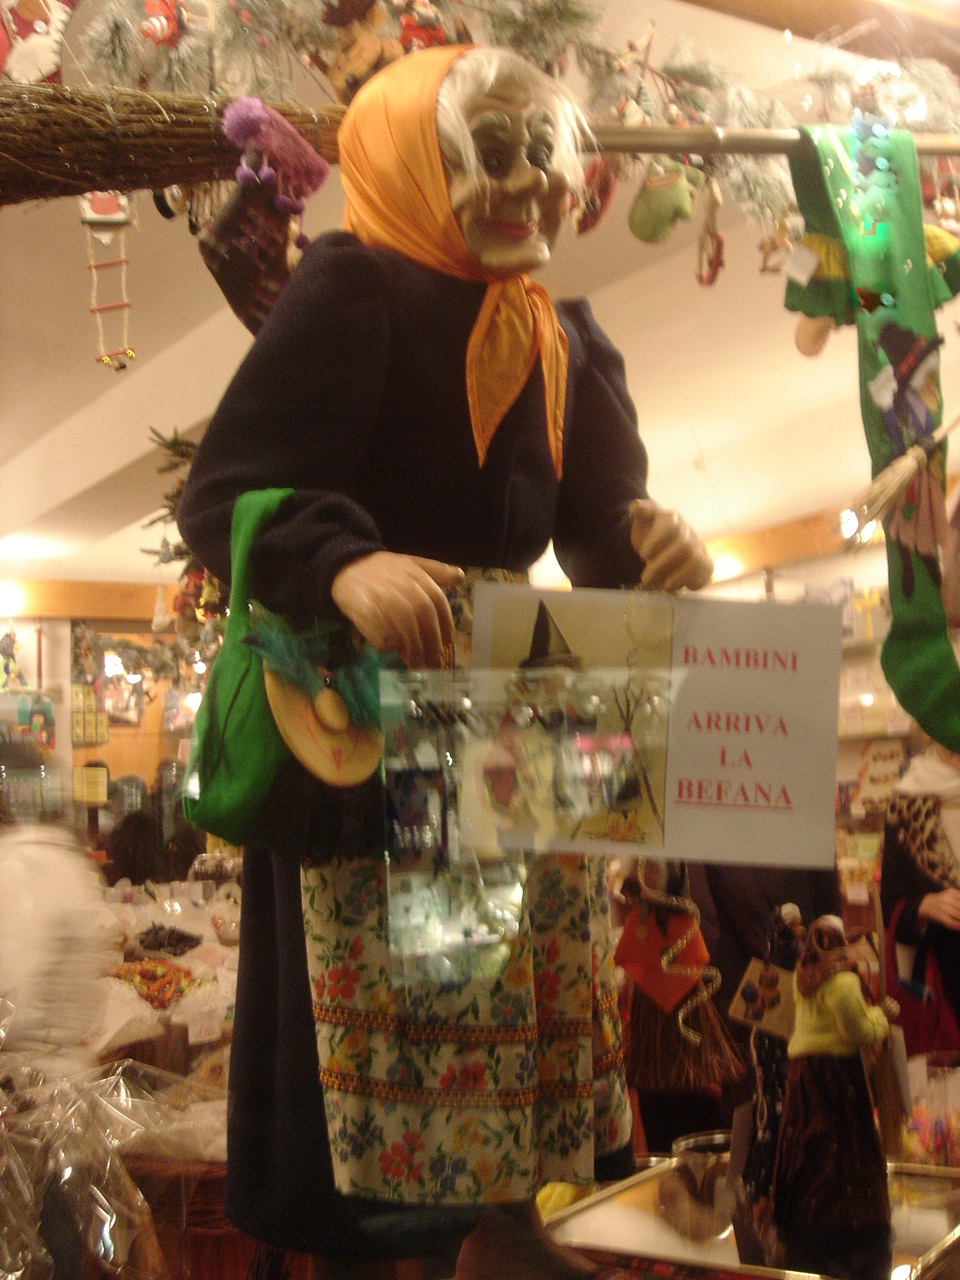 Befana Giving Gifts to Children